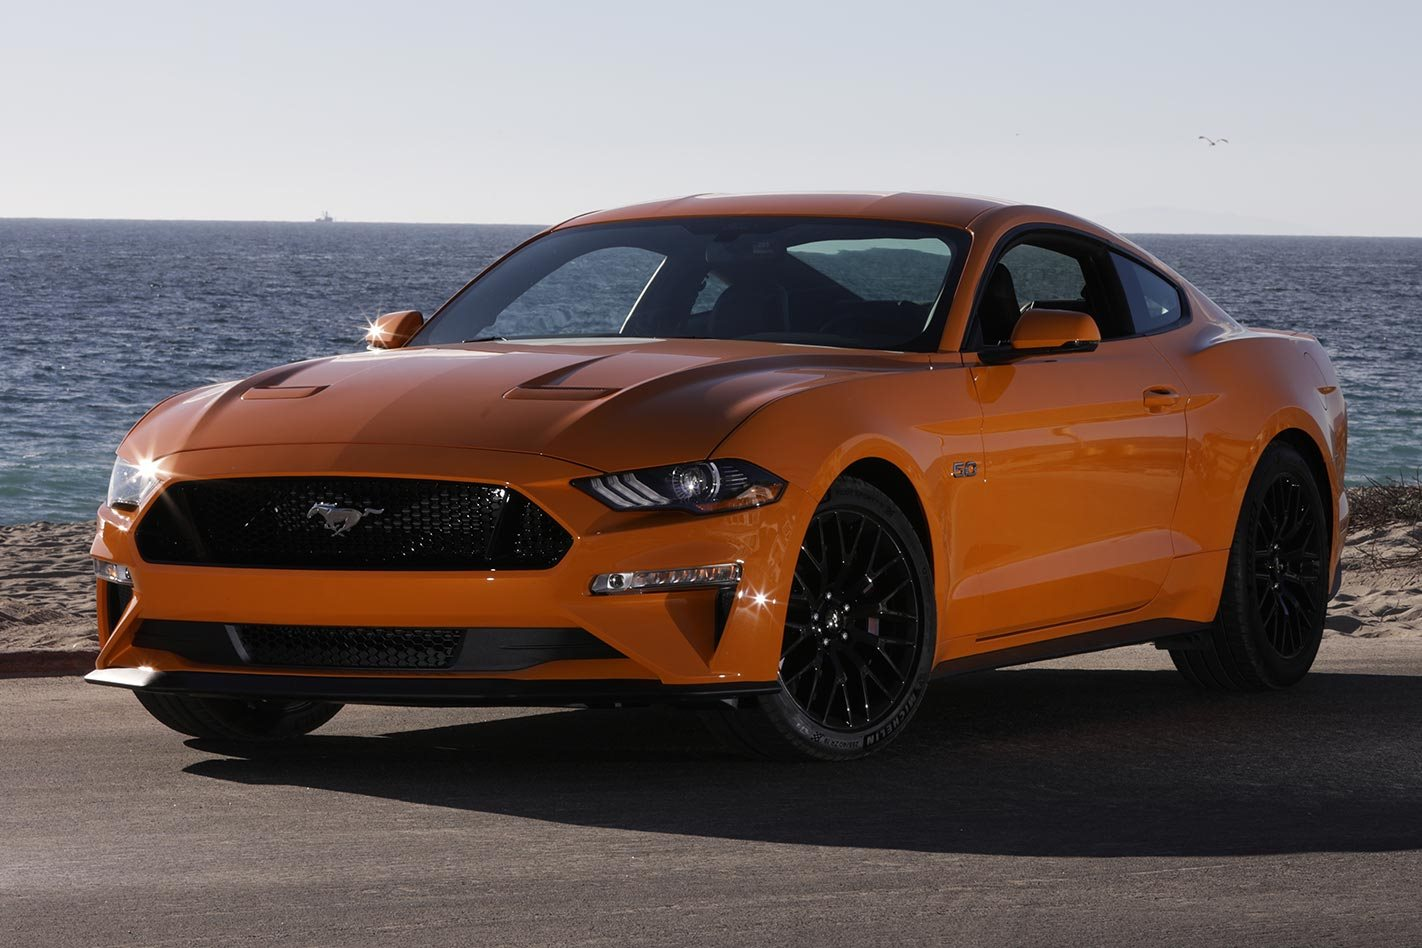 2018 Ford Mustang Australian Pricing And Specs Leaked Motor